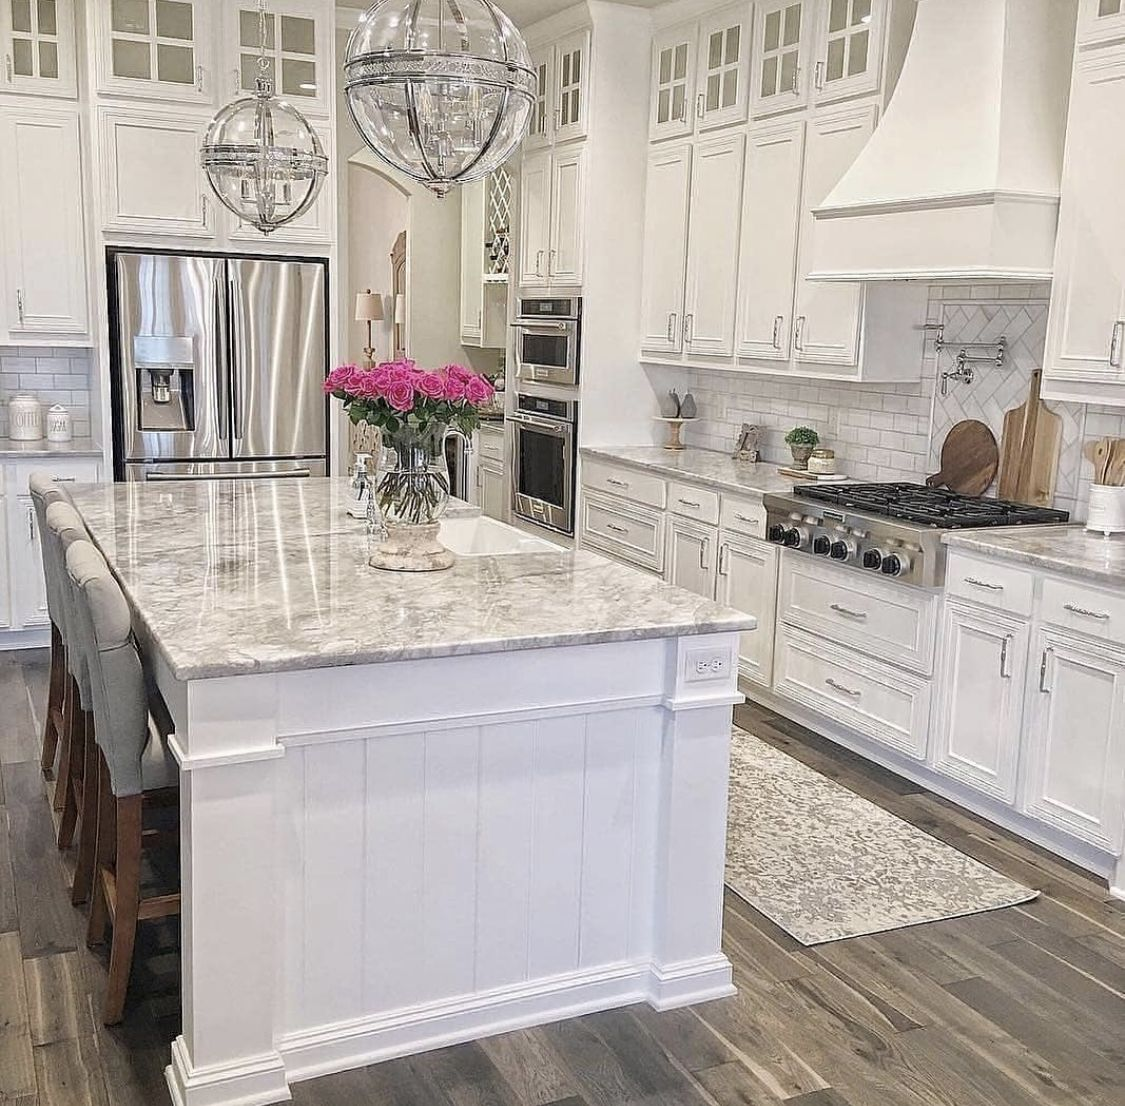 Pin by Shano on Heart of the home   Latest kitchen designs, White ...